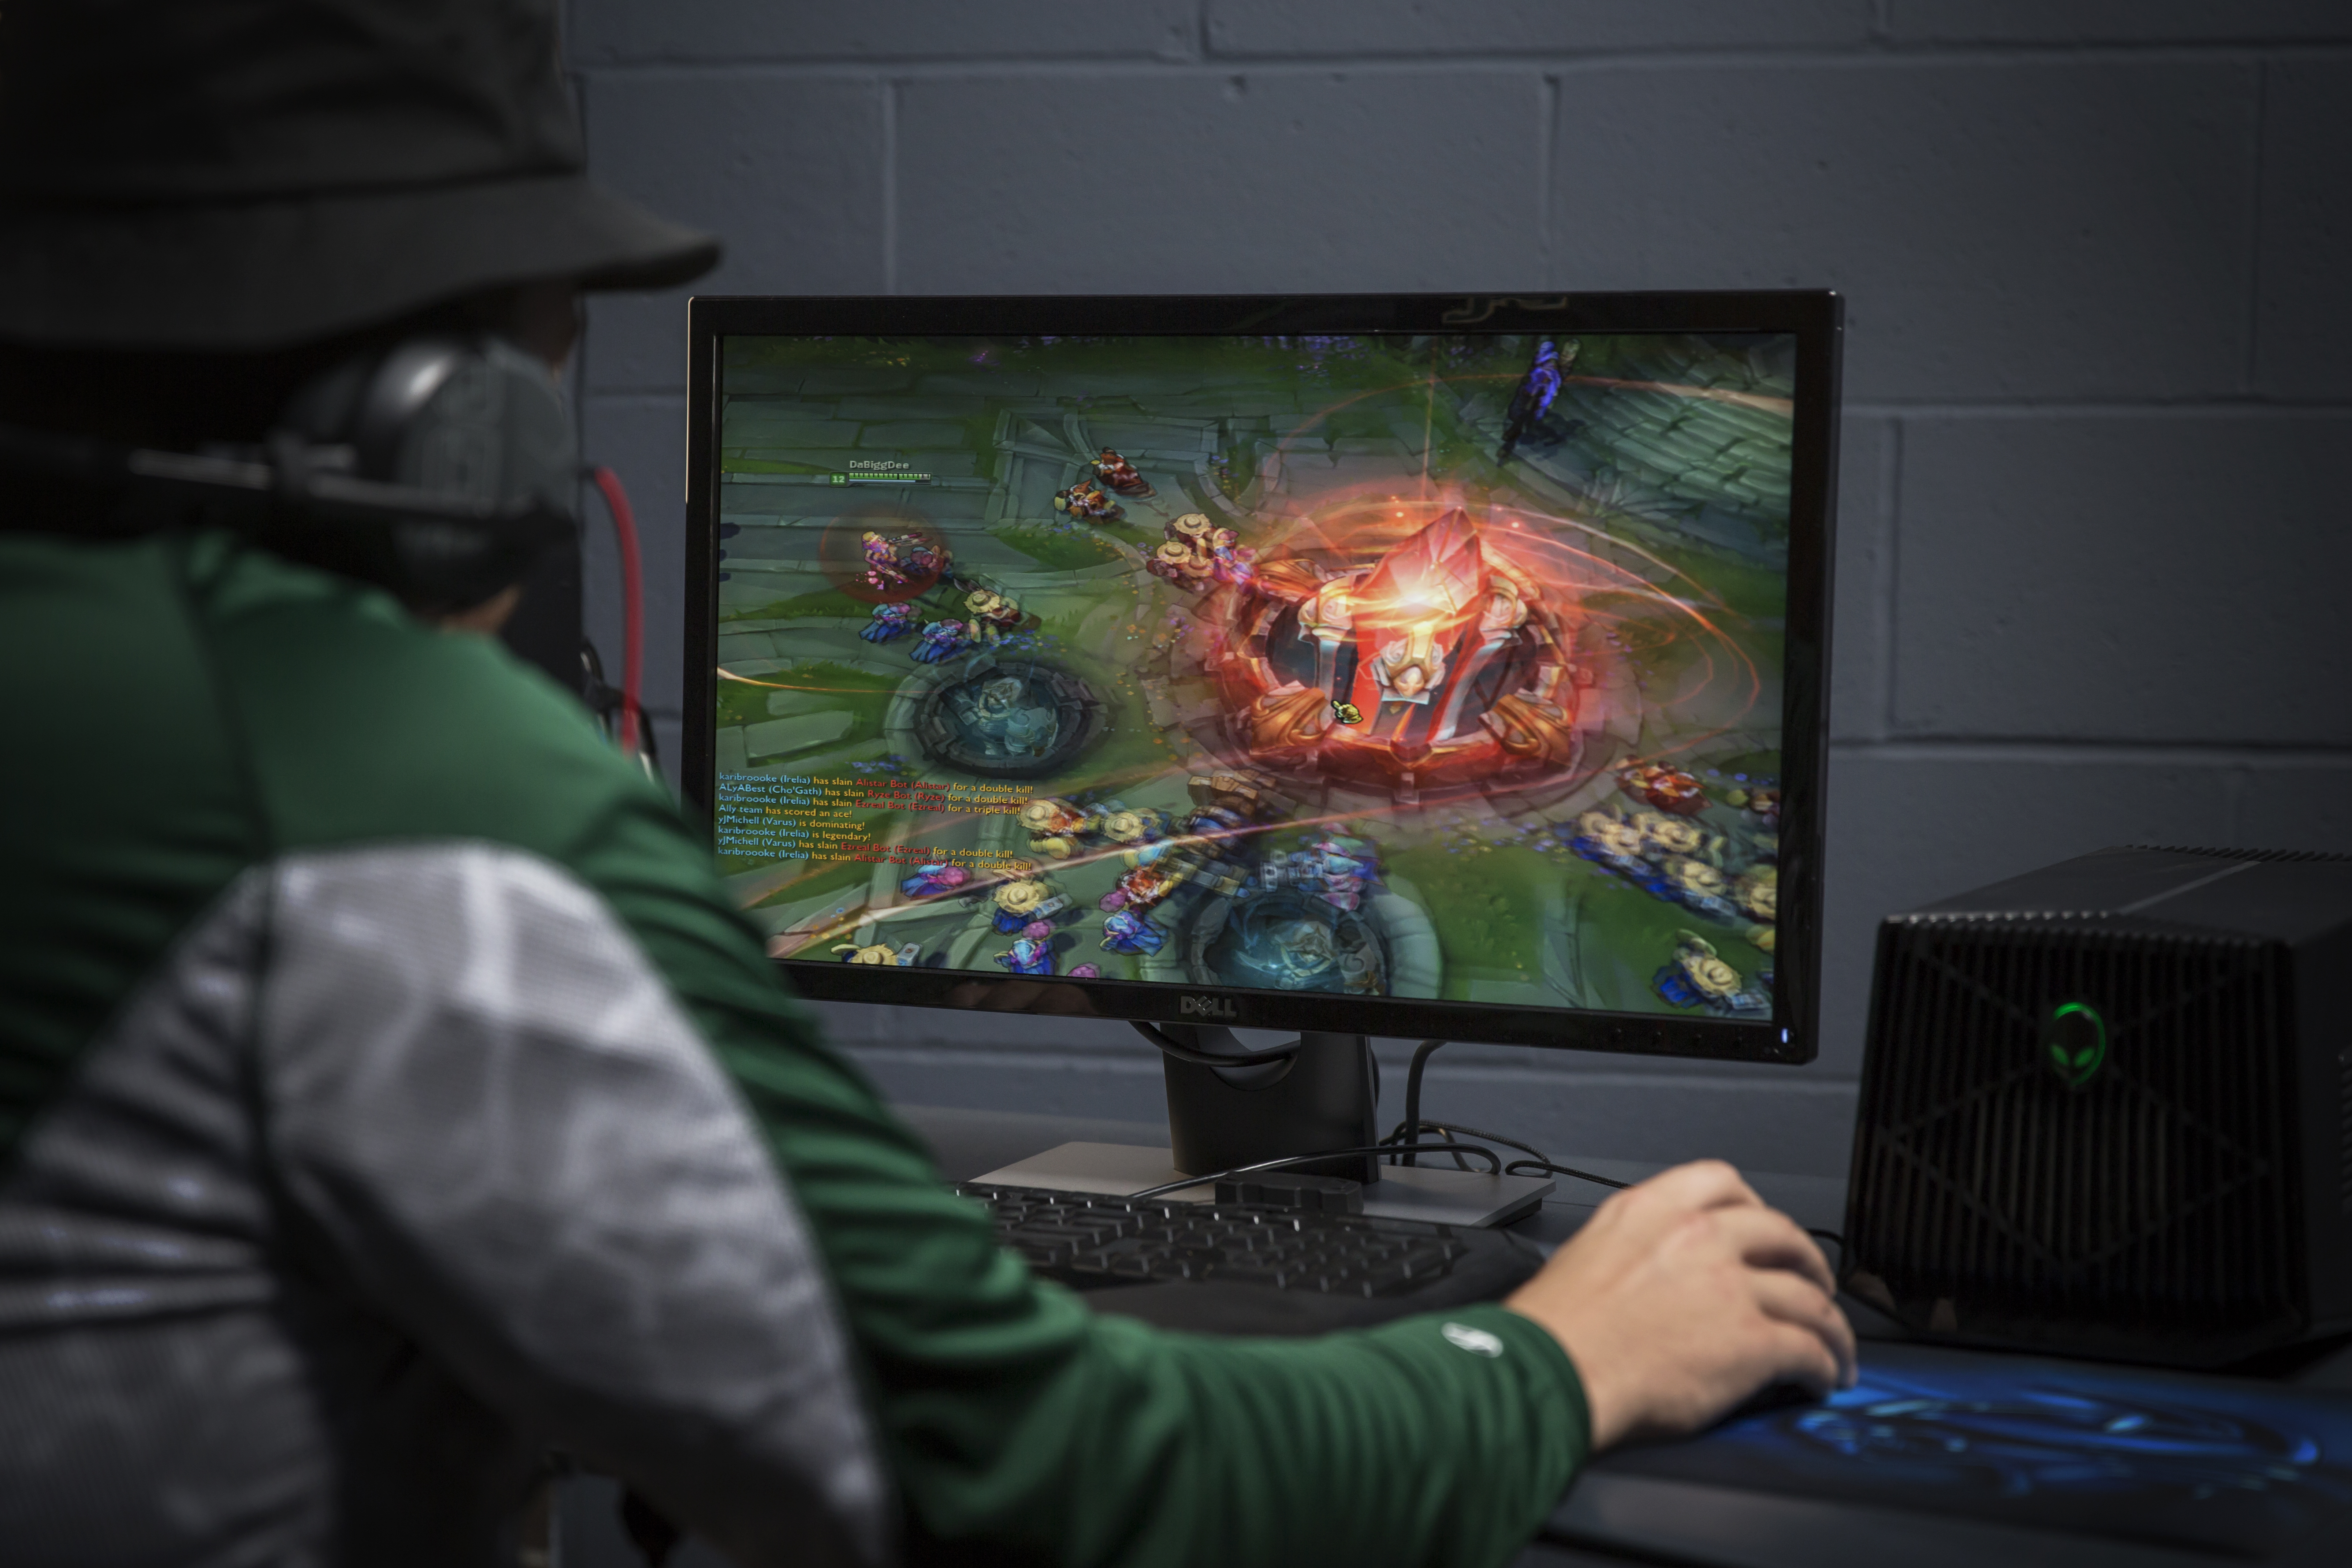 Keuka College created a minor in esports management about two years ago and plans to launch a major in fall 2020.